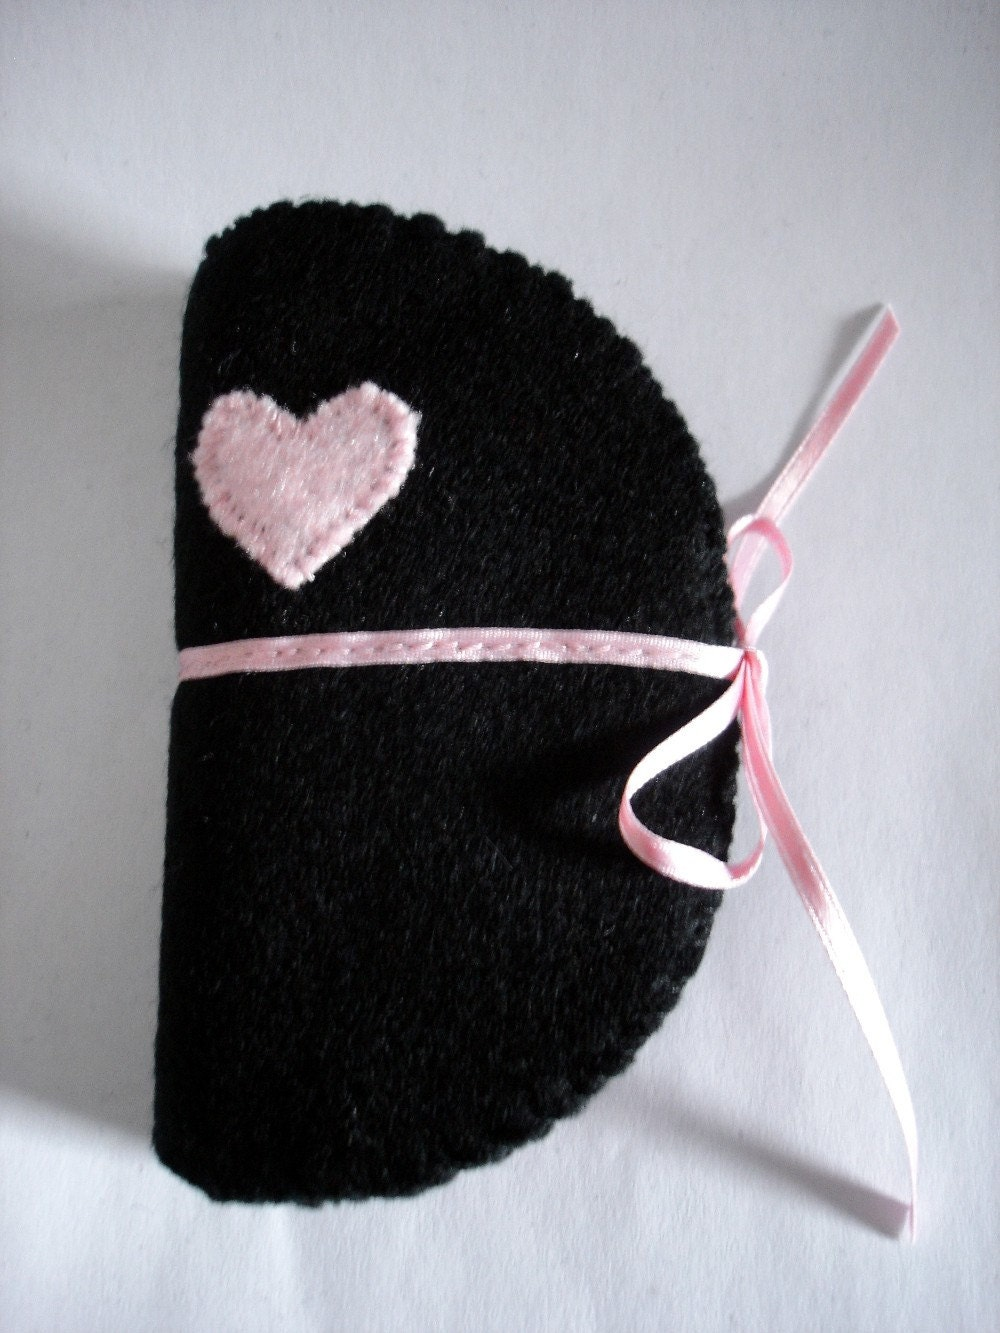 Black Needle Case with Pale Pink Heart Embroidery